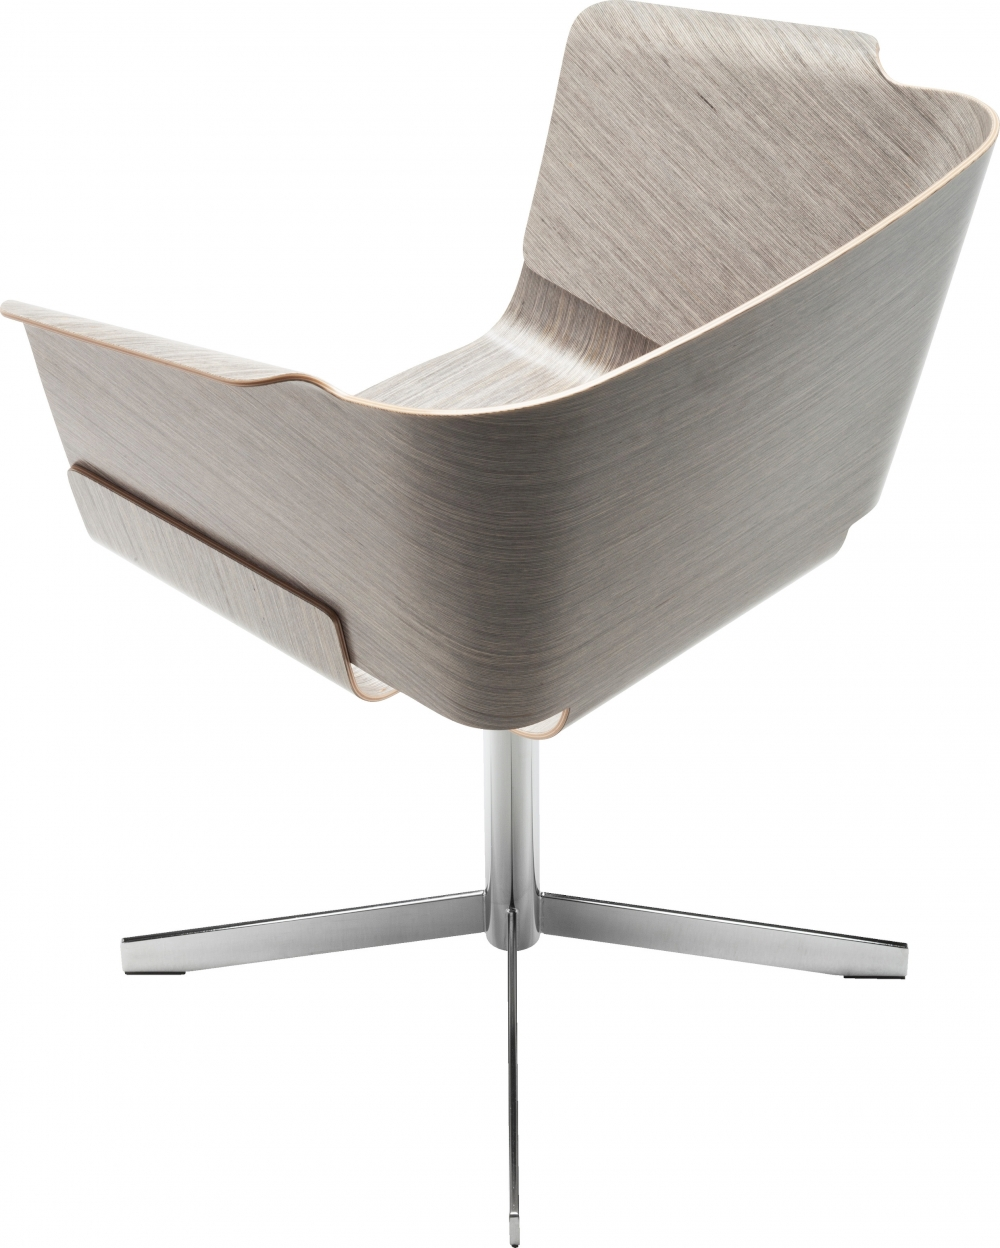 Kaava Chair. Designed for Isku Interior by Mikko Laakkonen.